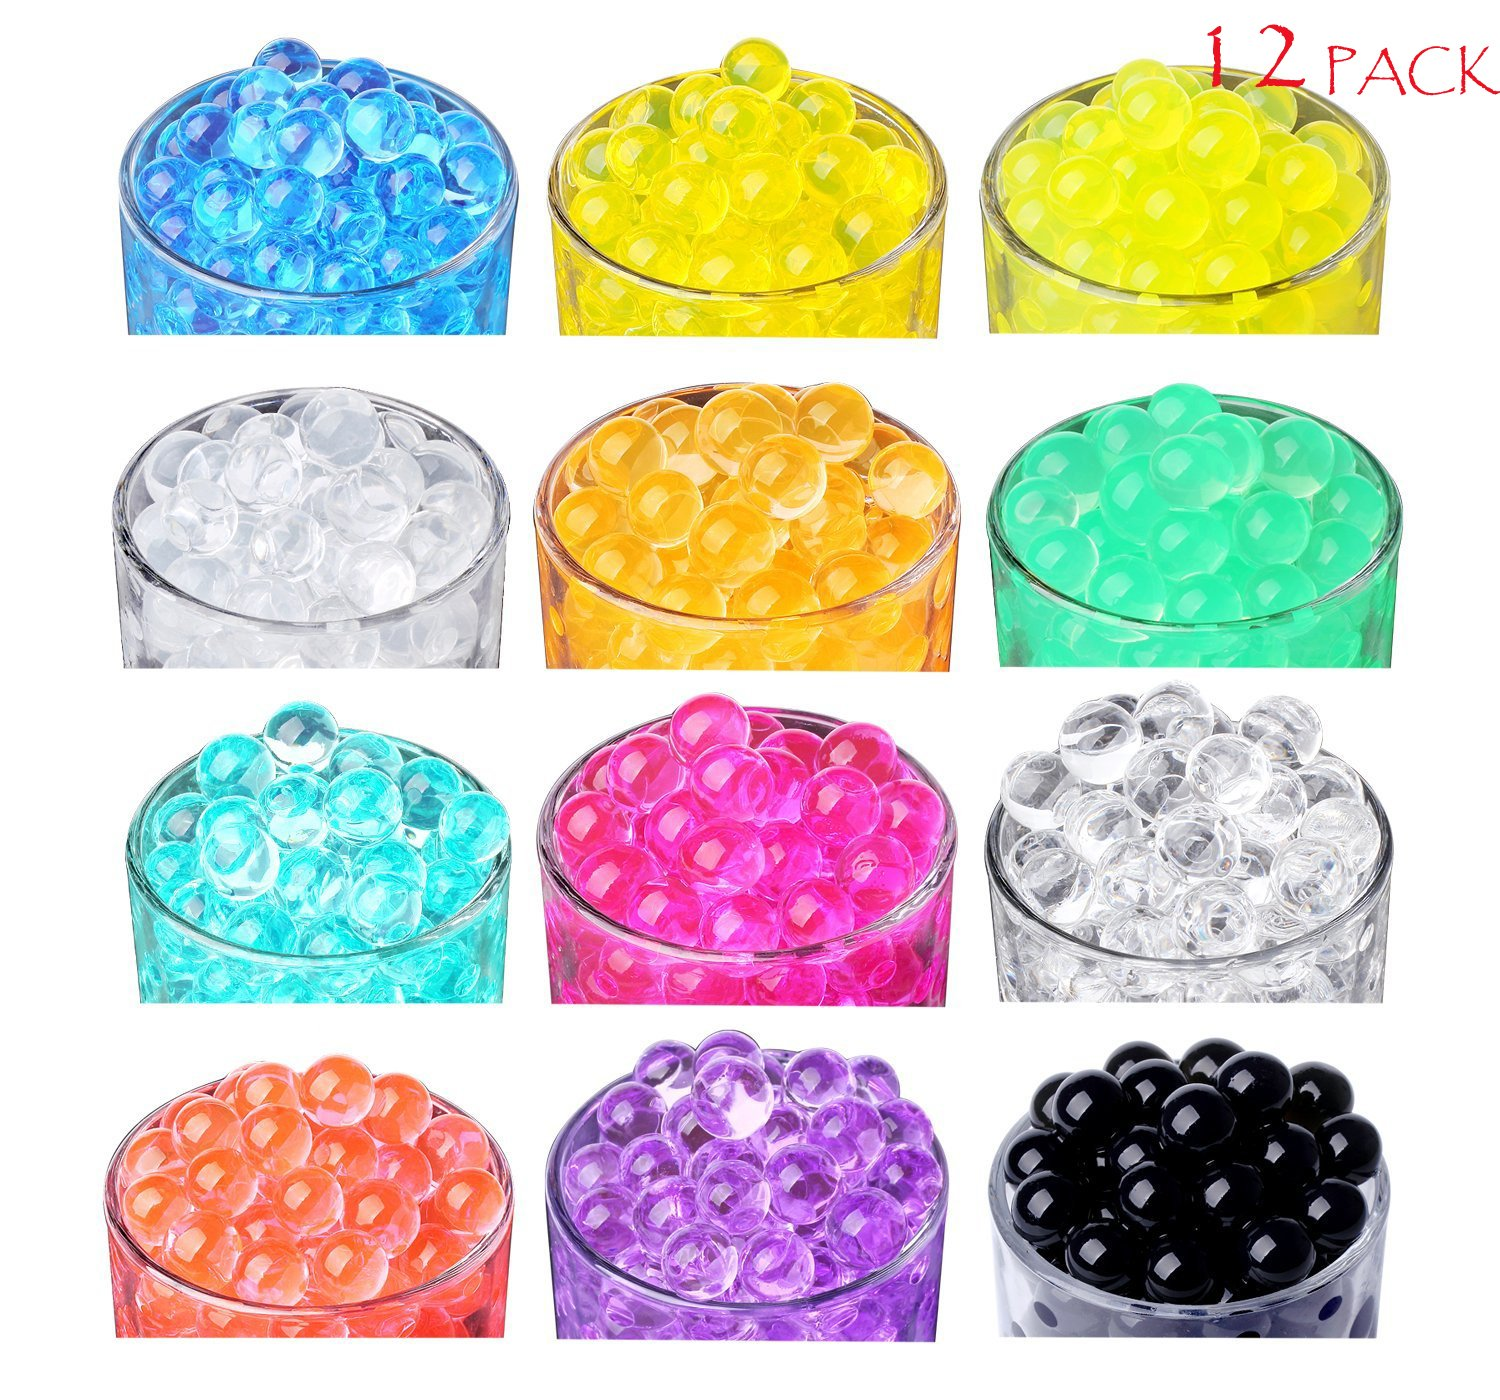 SHEING [12 Color Pack] Water Beads, Water Gel Beads Pearls for Vase Filler, Wedding Centerpiece, Home Decoration, Plants, Sensory Toy - 5 Grams per Pack